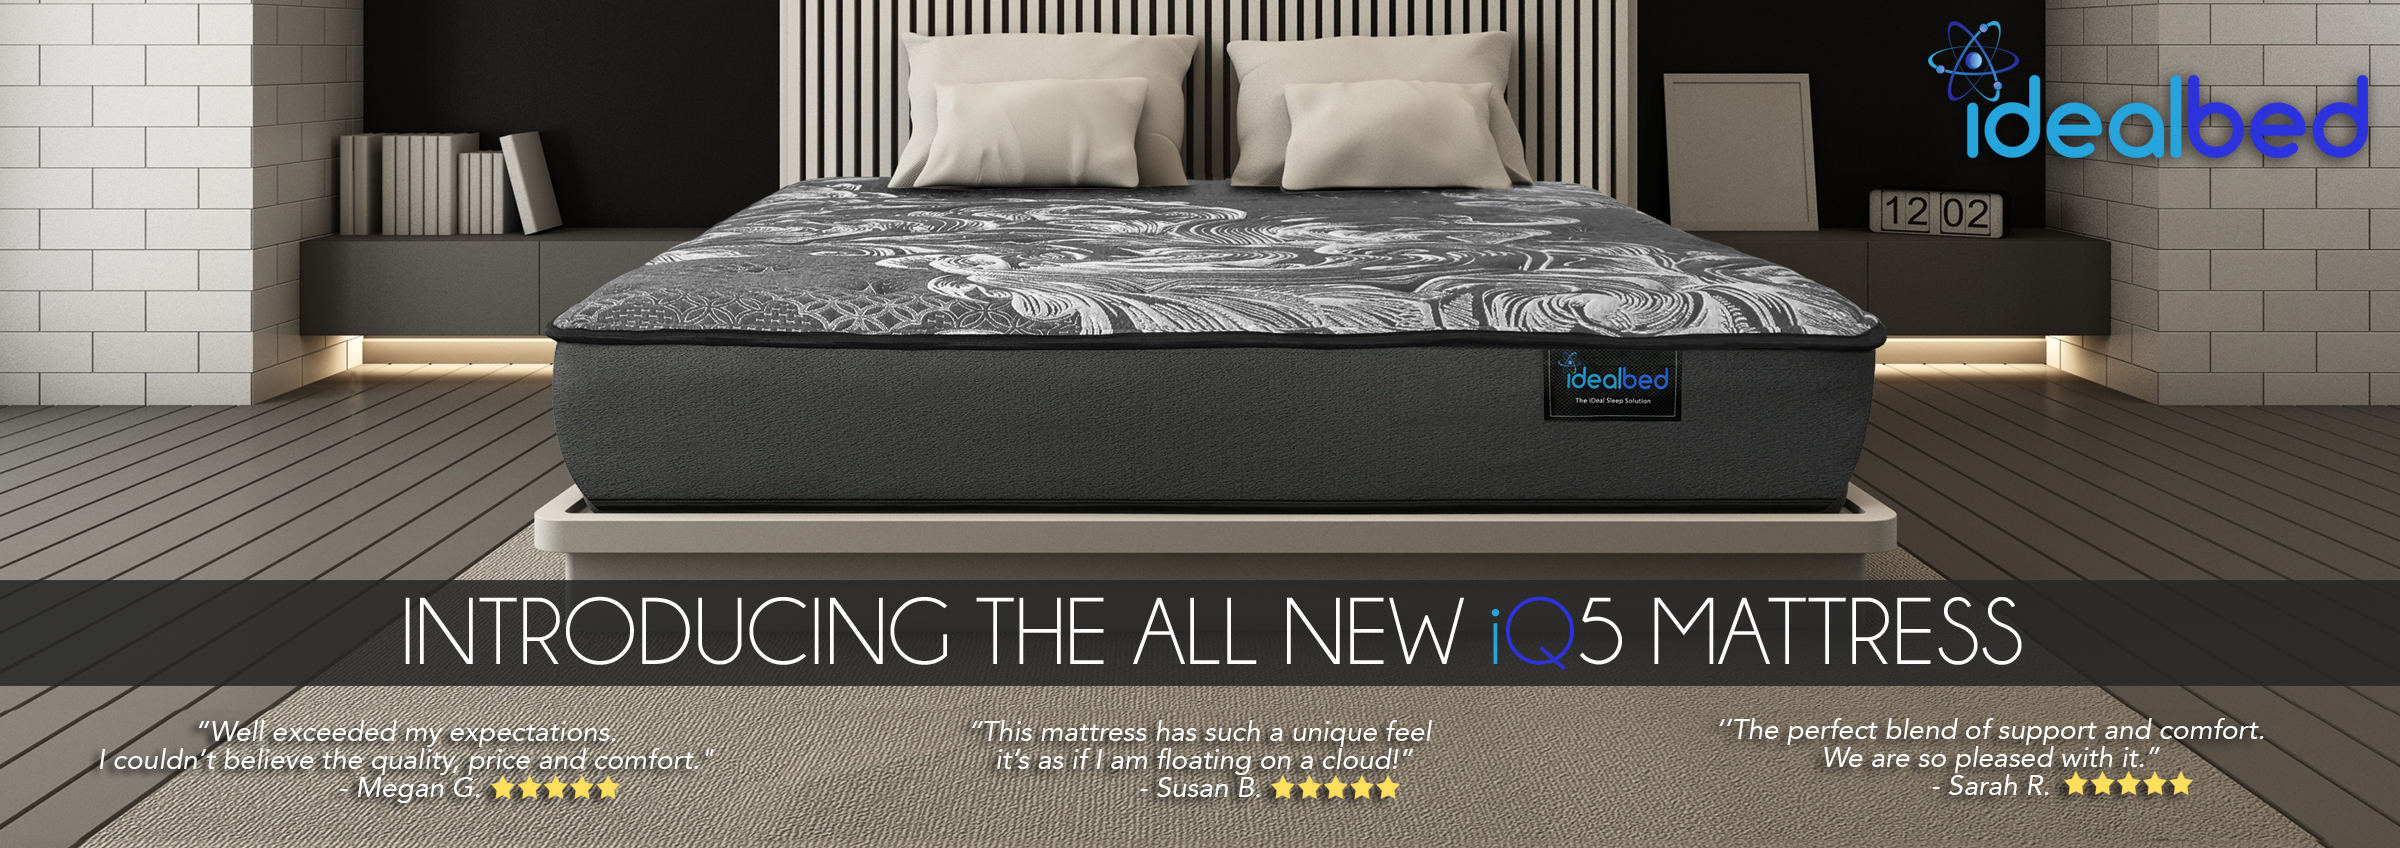 Introducing the iDealBed Luxe Series Hybrid iQ5 Mattress